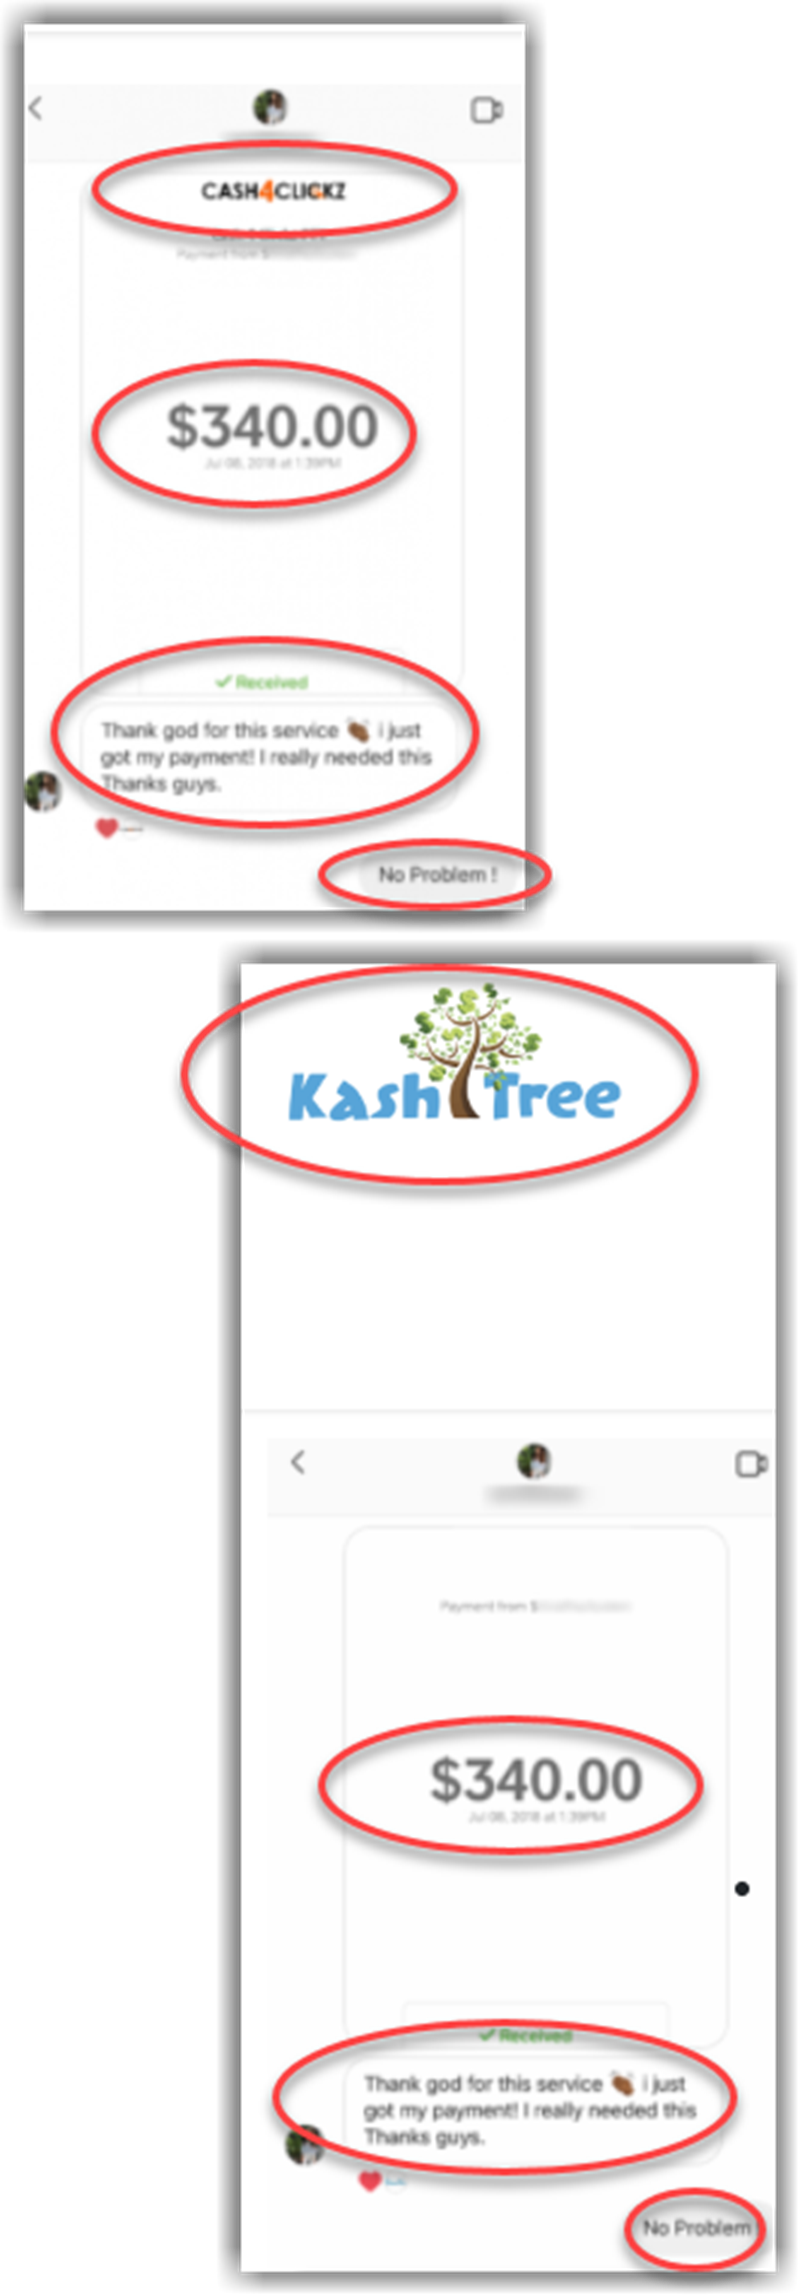 Cash4Clickz Review Fake Proofs of Payment KashTree